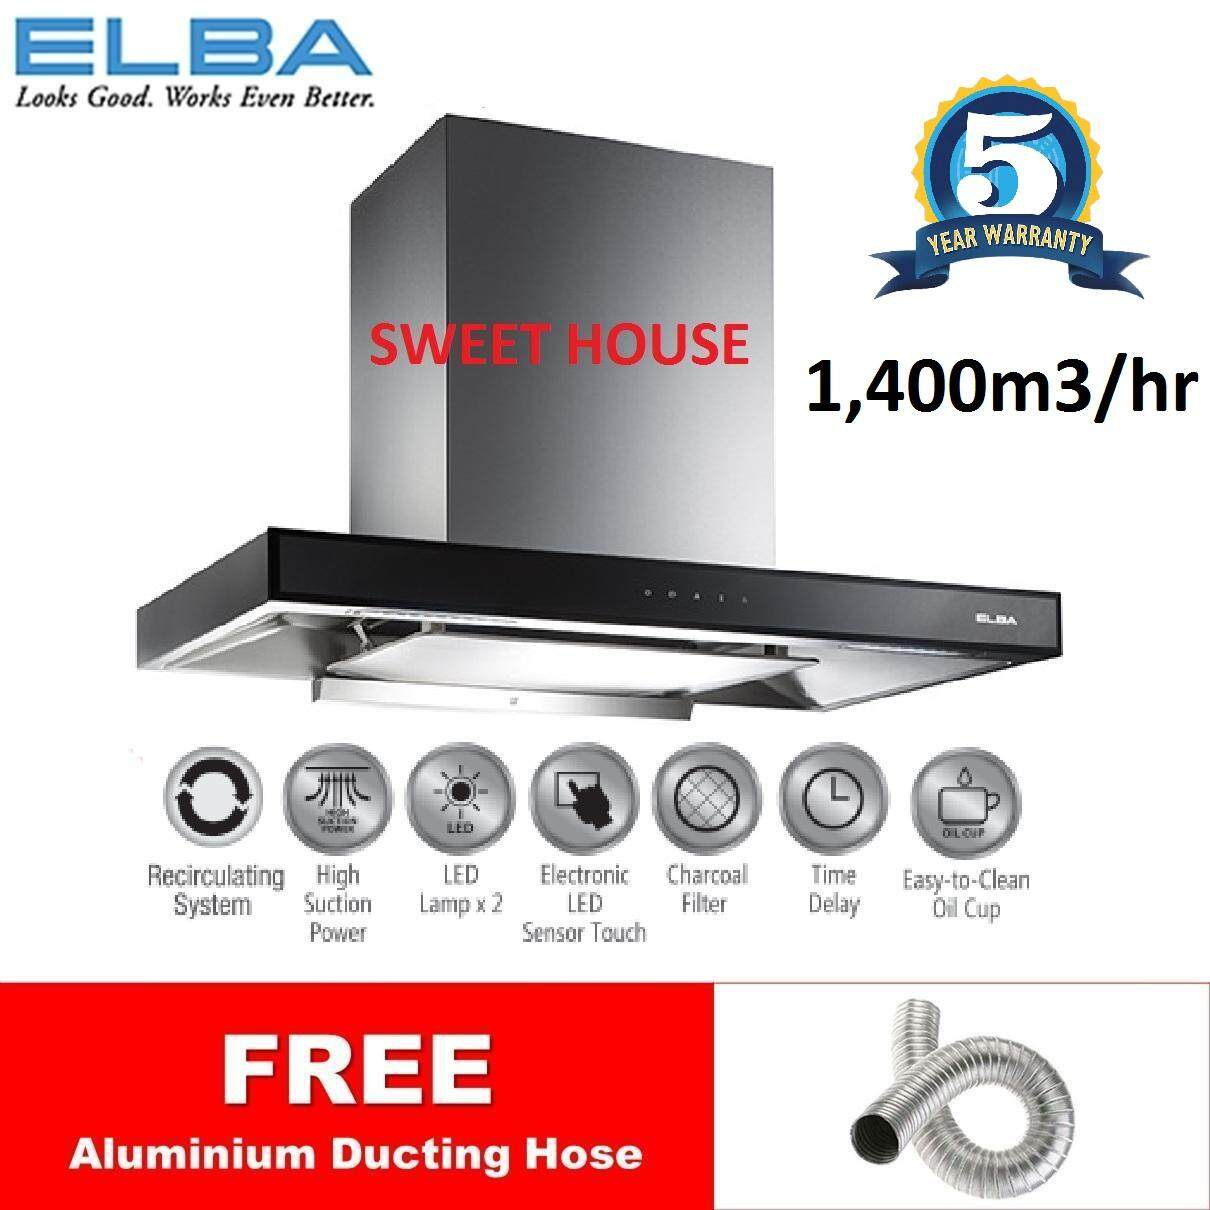 [CNY 2020] *SALES* [2020 New Model] ELBA HOOD ELEGANTE EH-G9026ST(SS) Designer Hood with 1400m3/hr Suction Power LED Sensor Touch Control and Recirculating System *Similar EH-E9122ST EH-H9027ST EHG9026ST